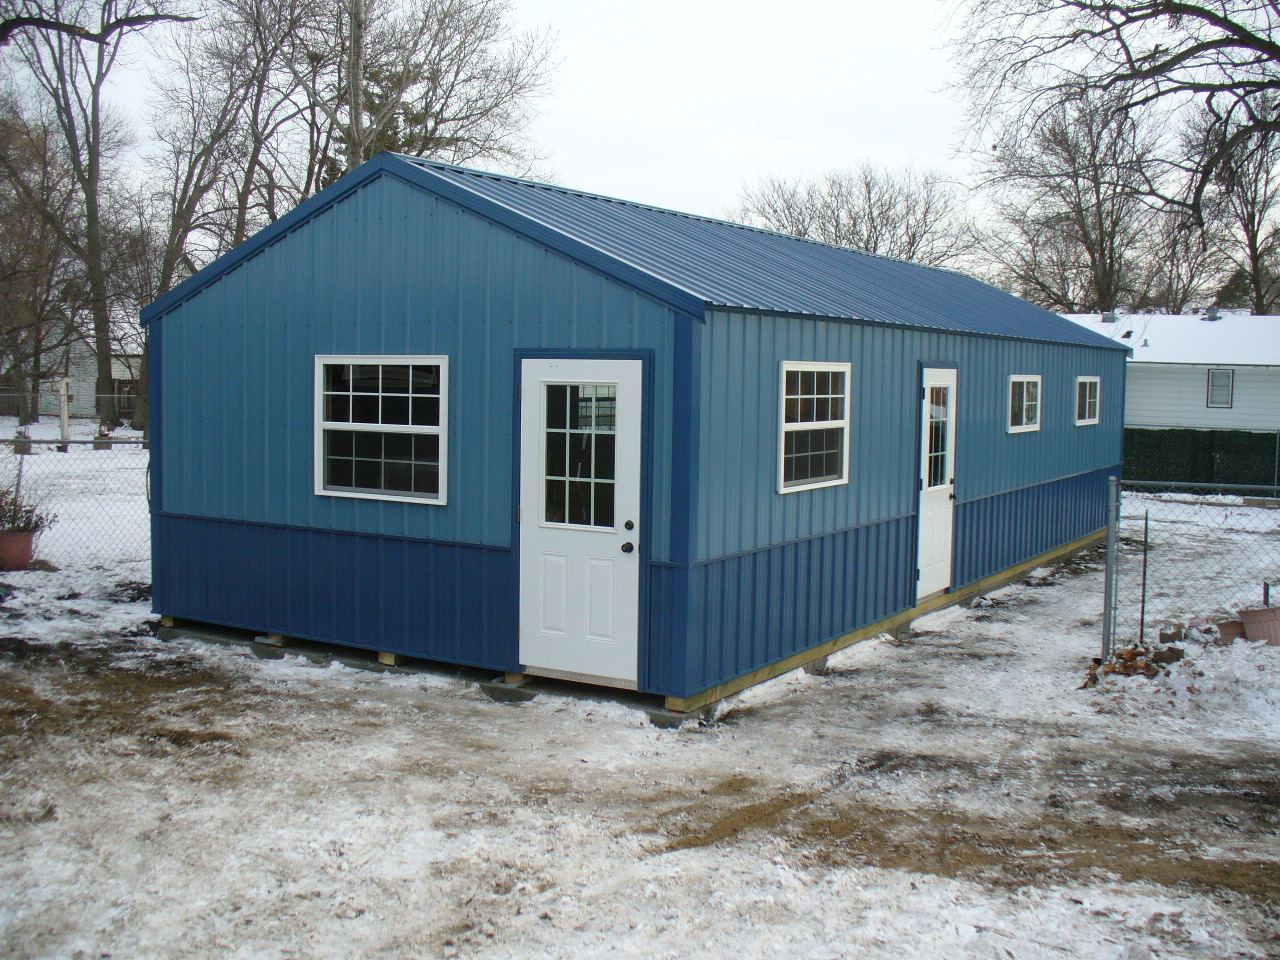 Swede's Portable Garage with Windows